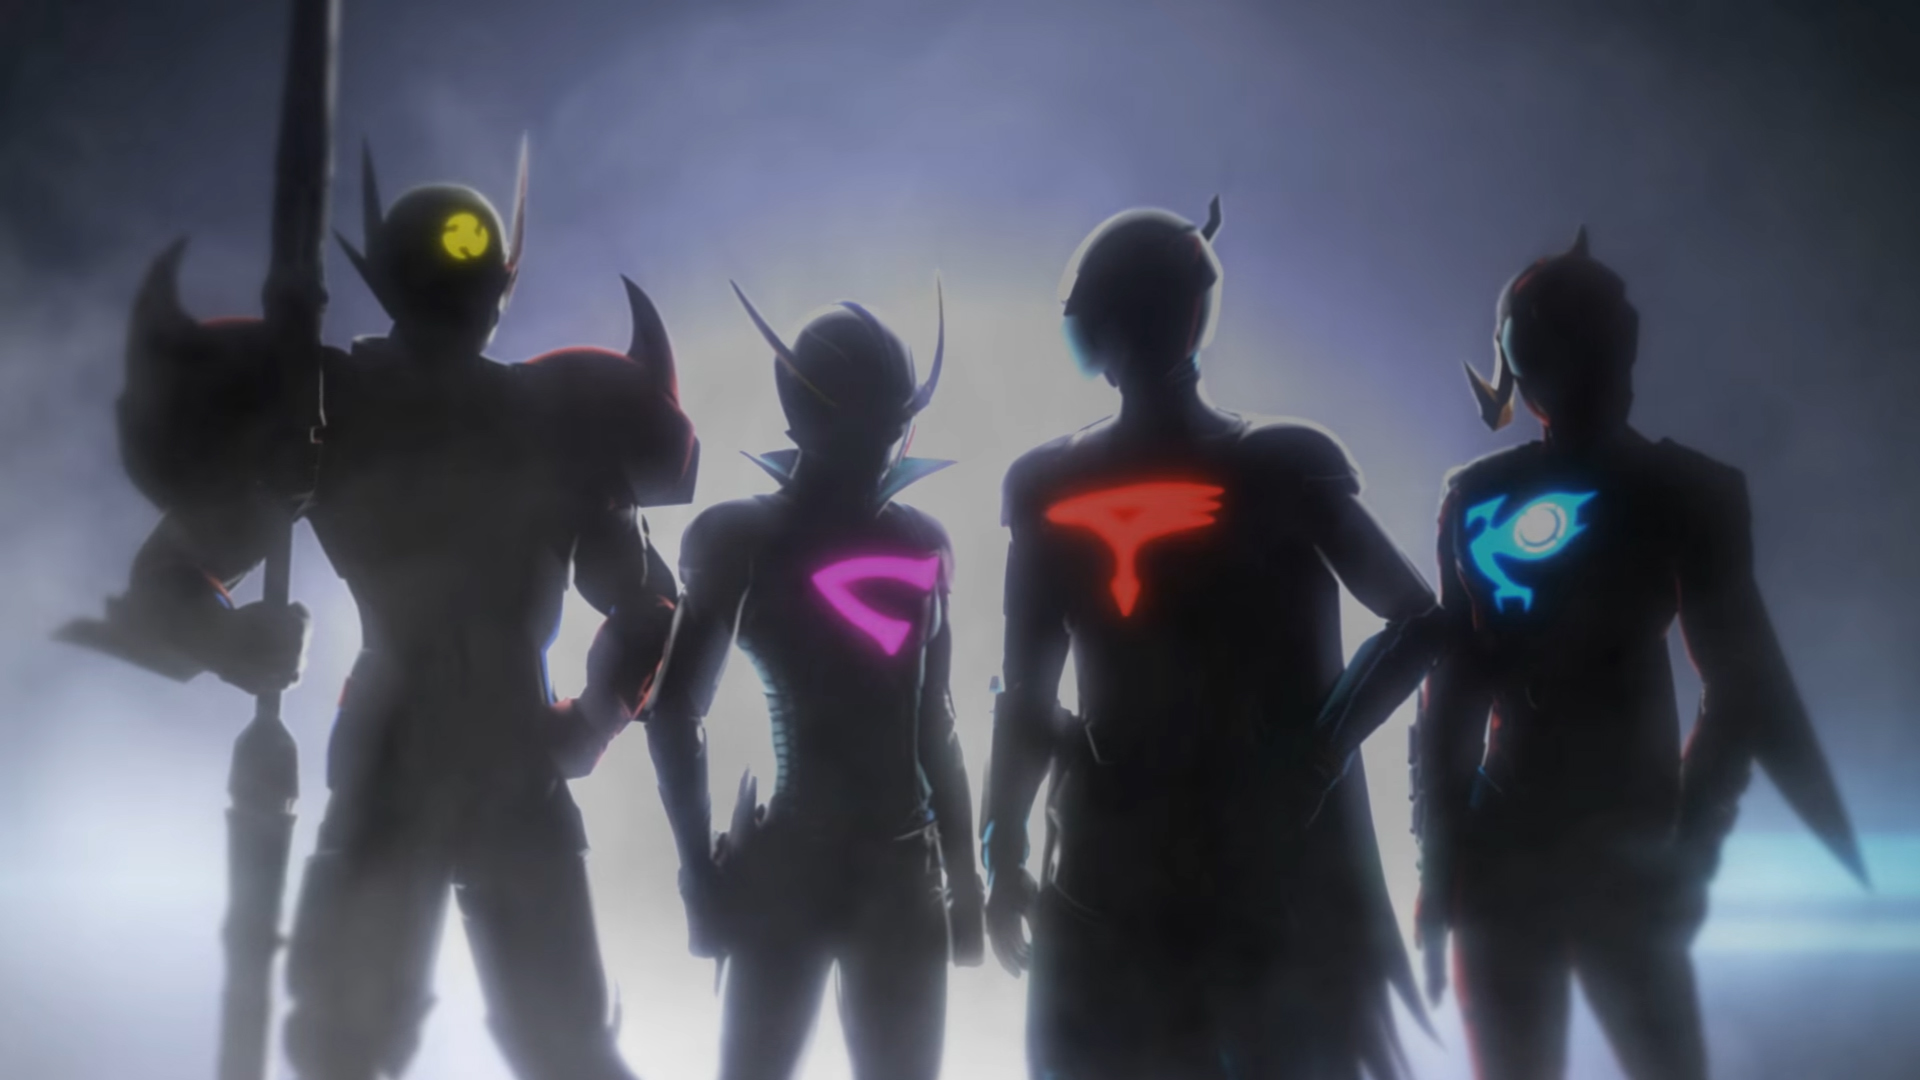 Tatsunoko Infini-T Force CG Anime Unveils New Character Visuals and Announces World Premiere at Anime Expo